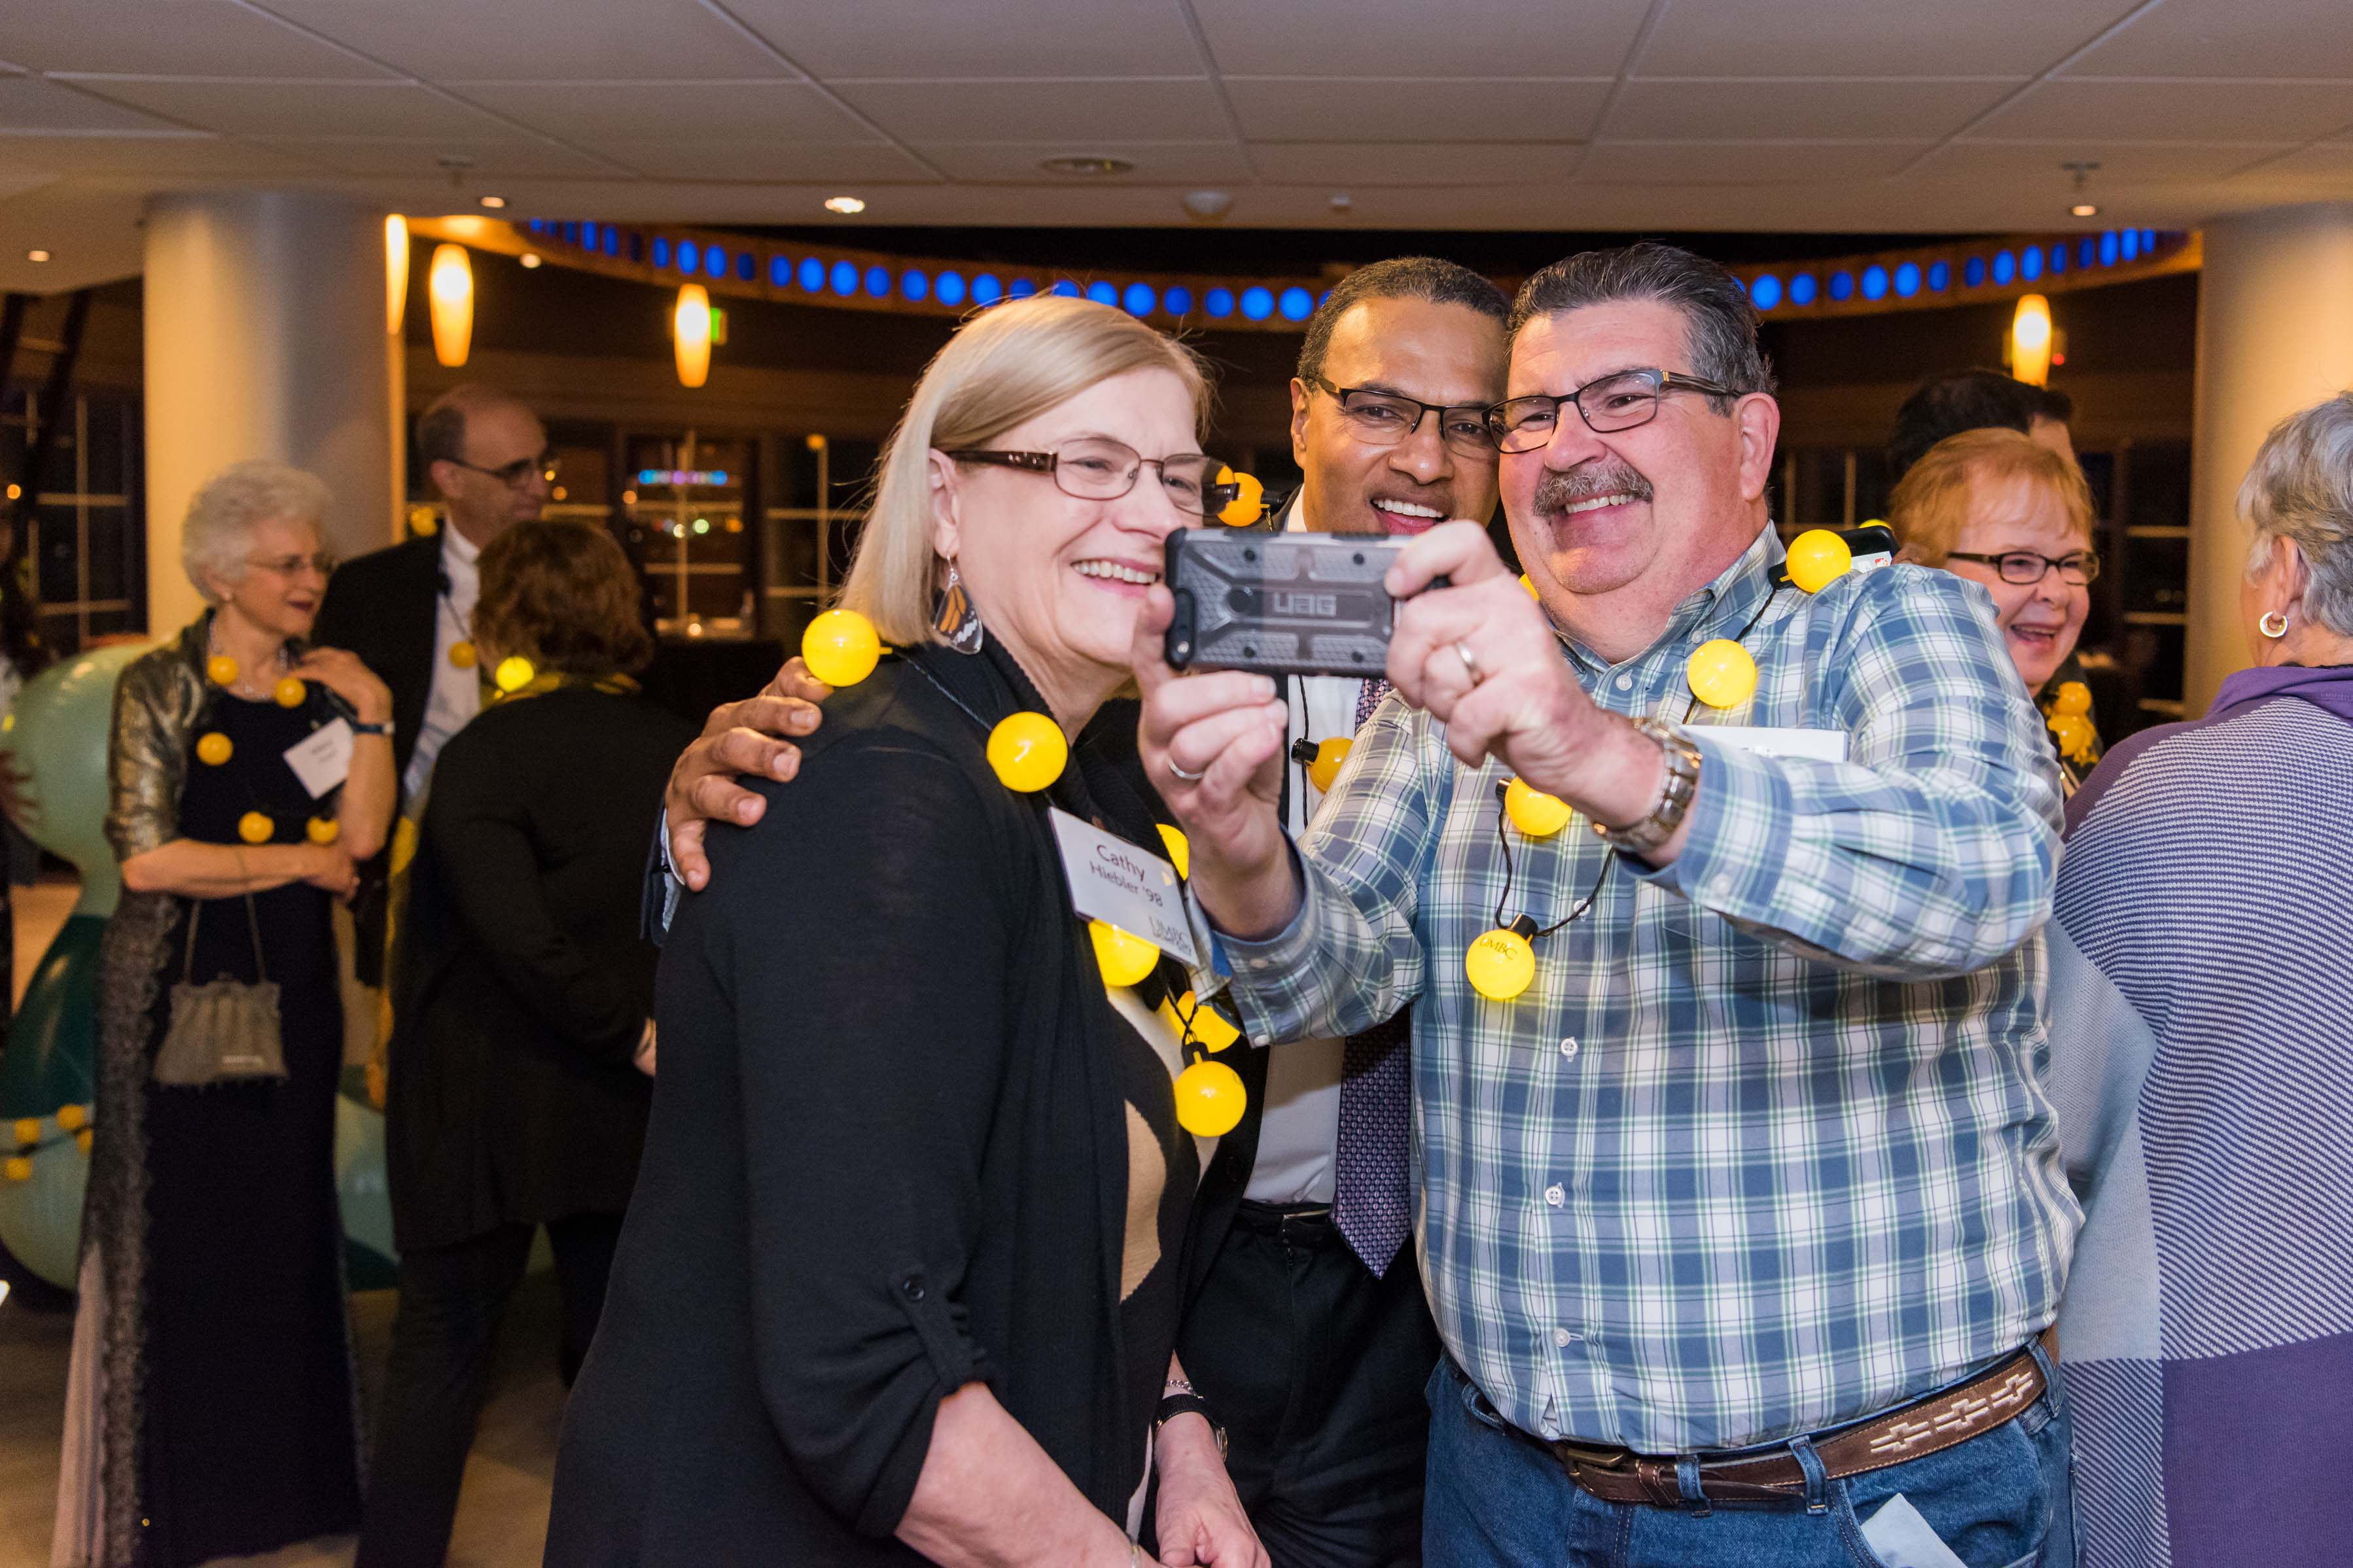 People take selfie with Hrabowski at Light city reception